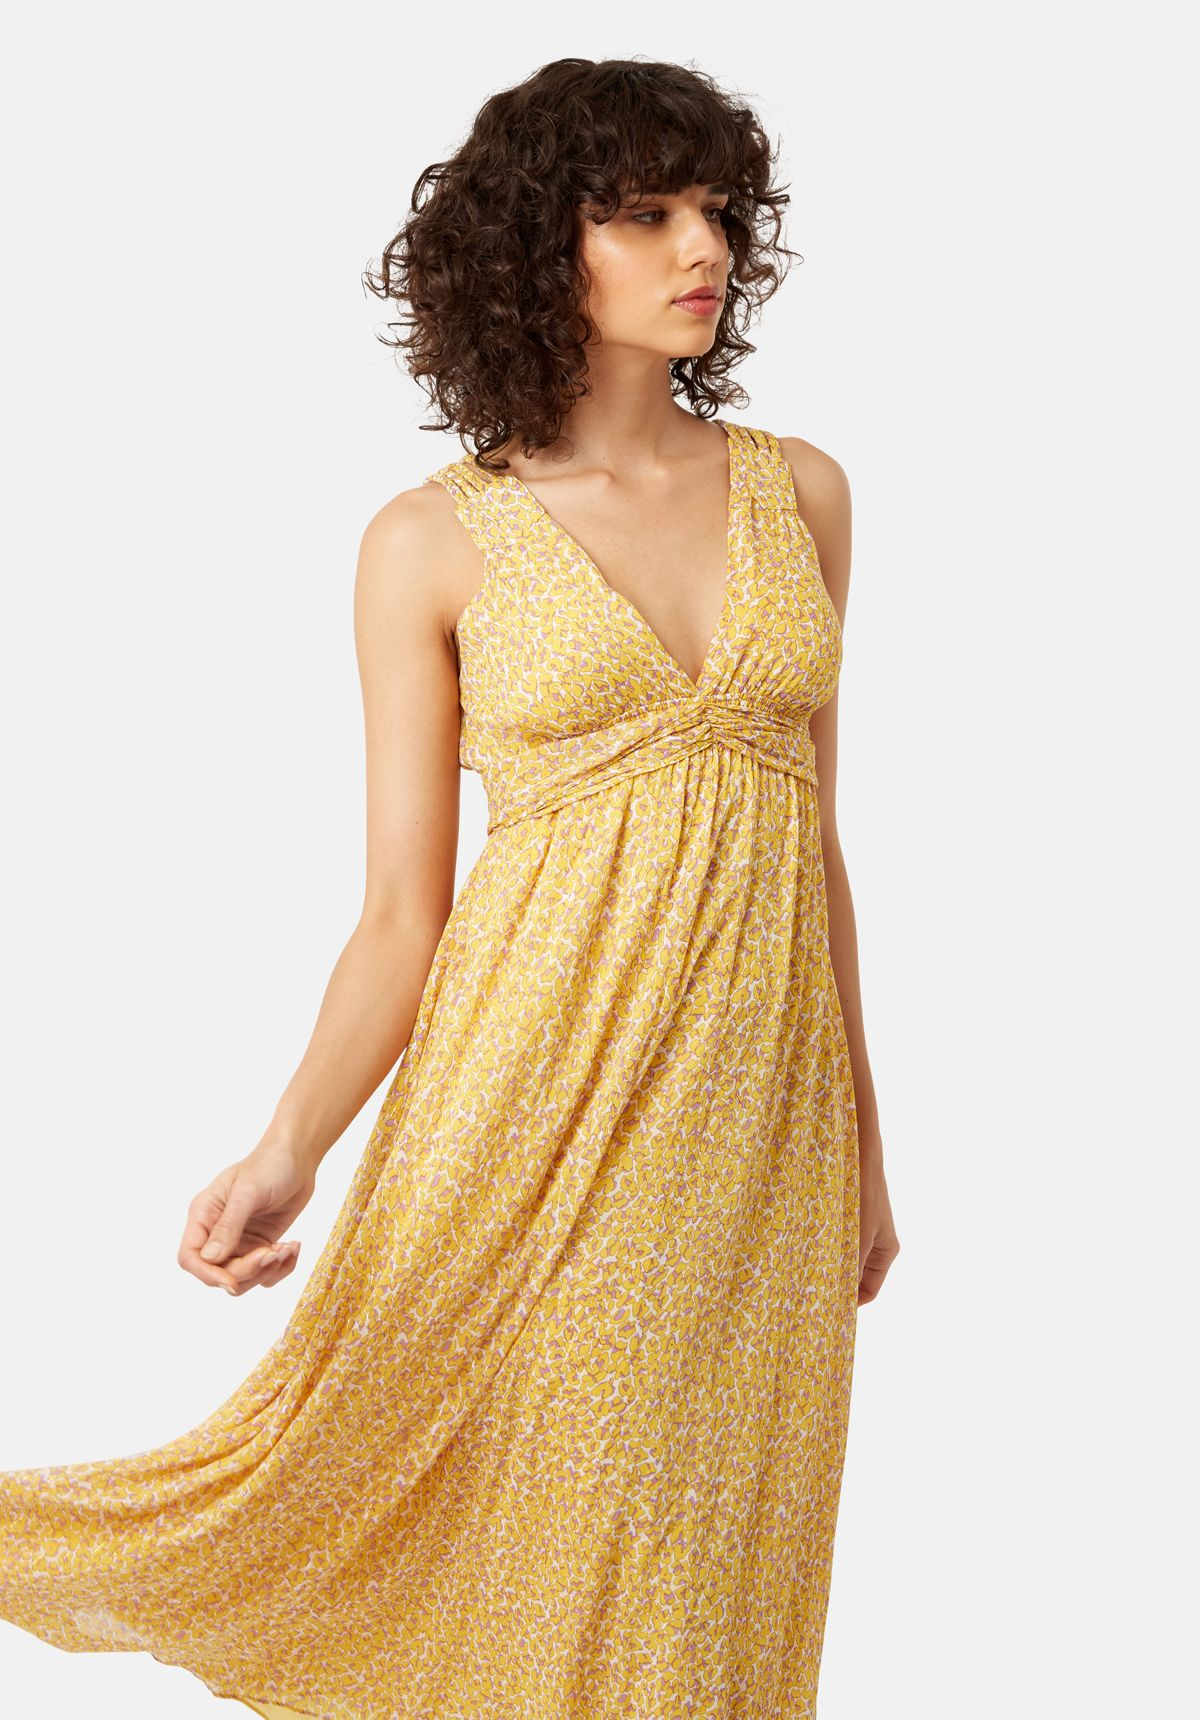 Sleeveless Summer Dreams Maxi Dress in Yellow Animal Print